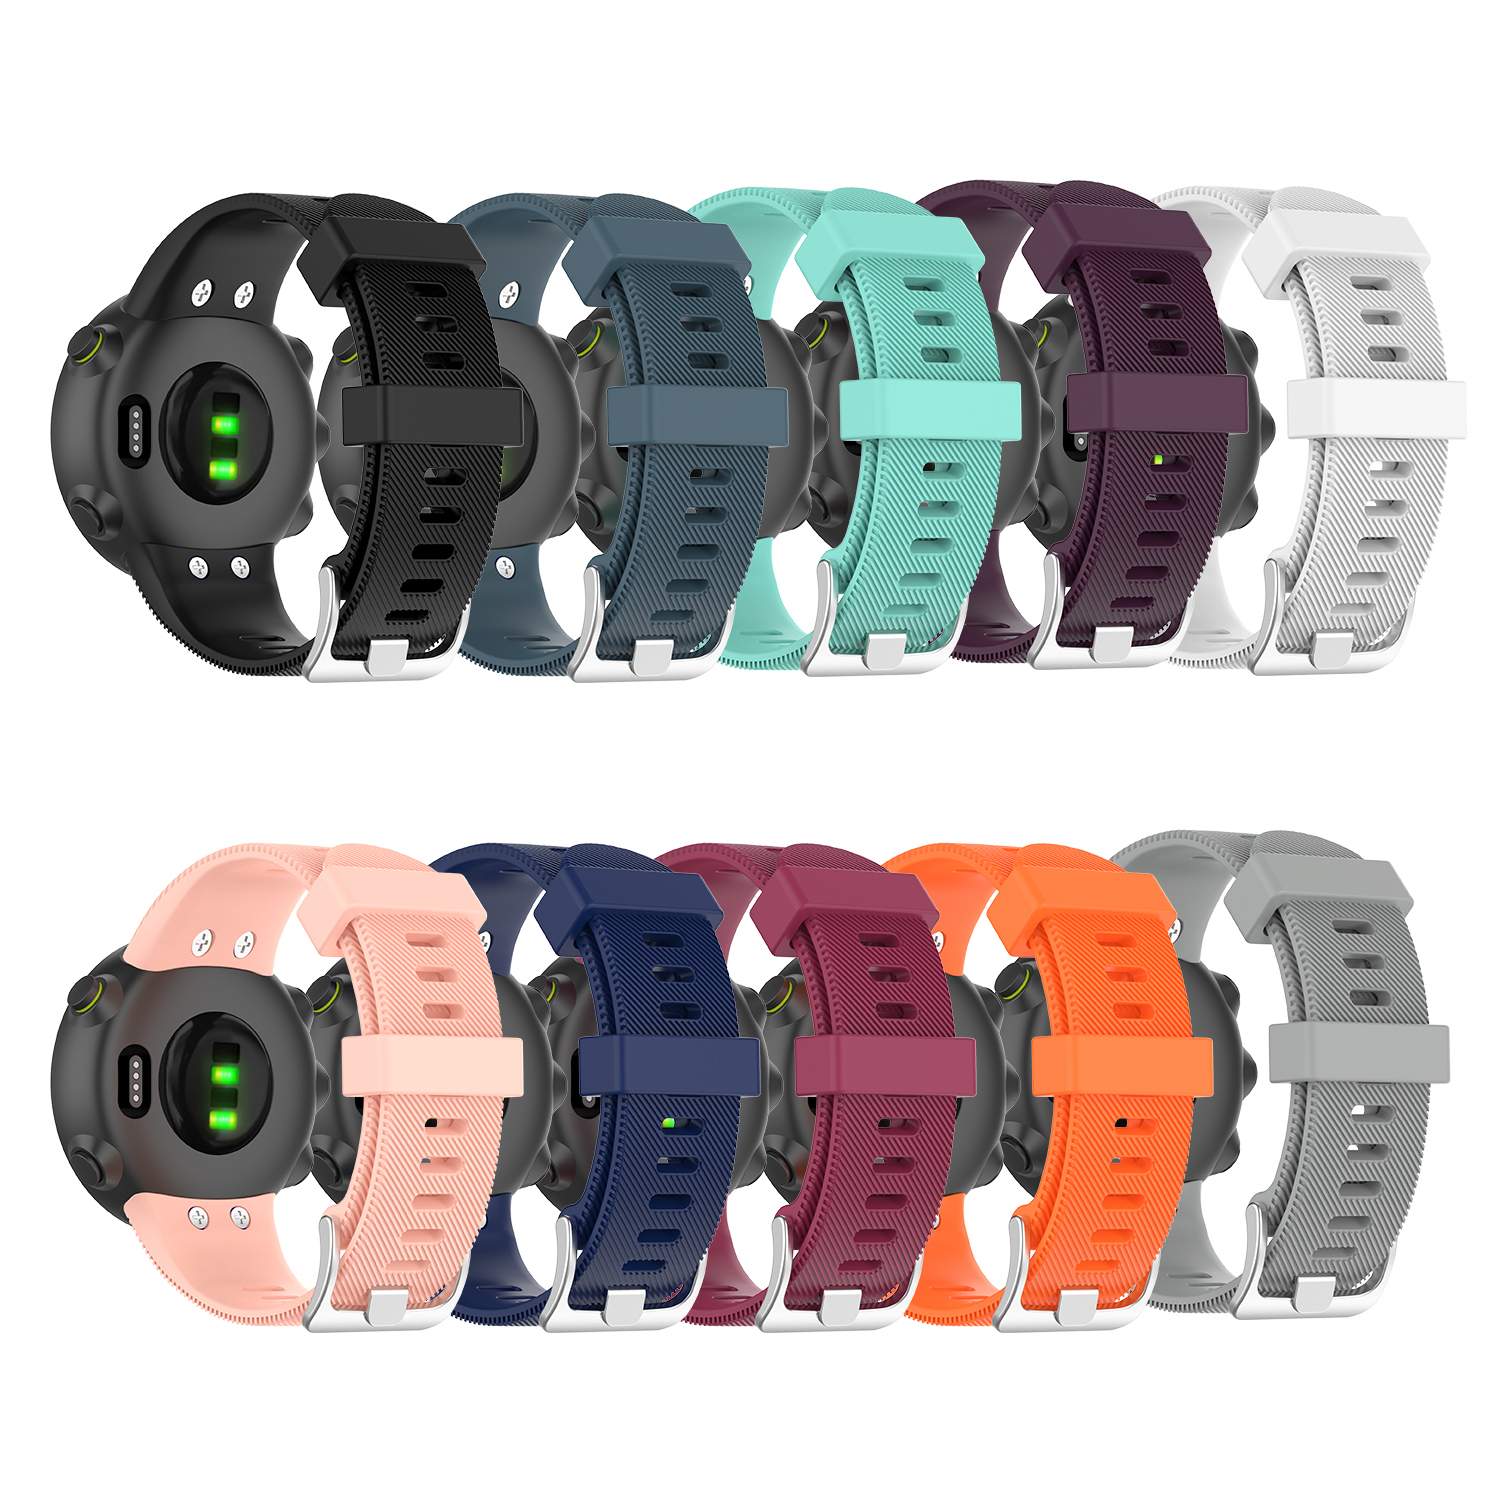 Silicone Original For Garmin Forerunner 45S Bands Sport Replacement Bracelet Watchband For Garmin Forerunner 45 Smart Watchstrap